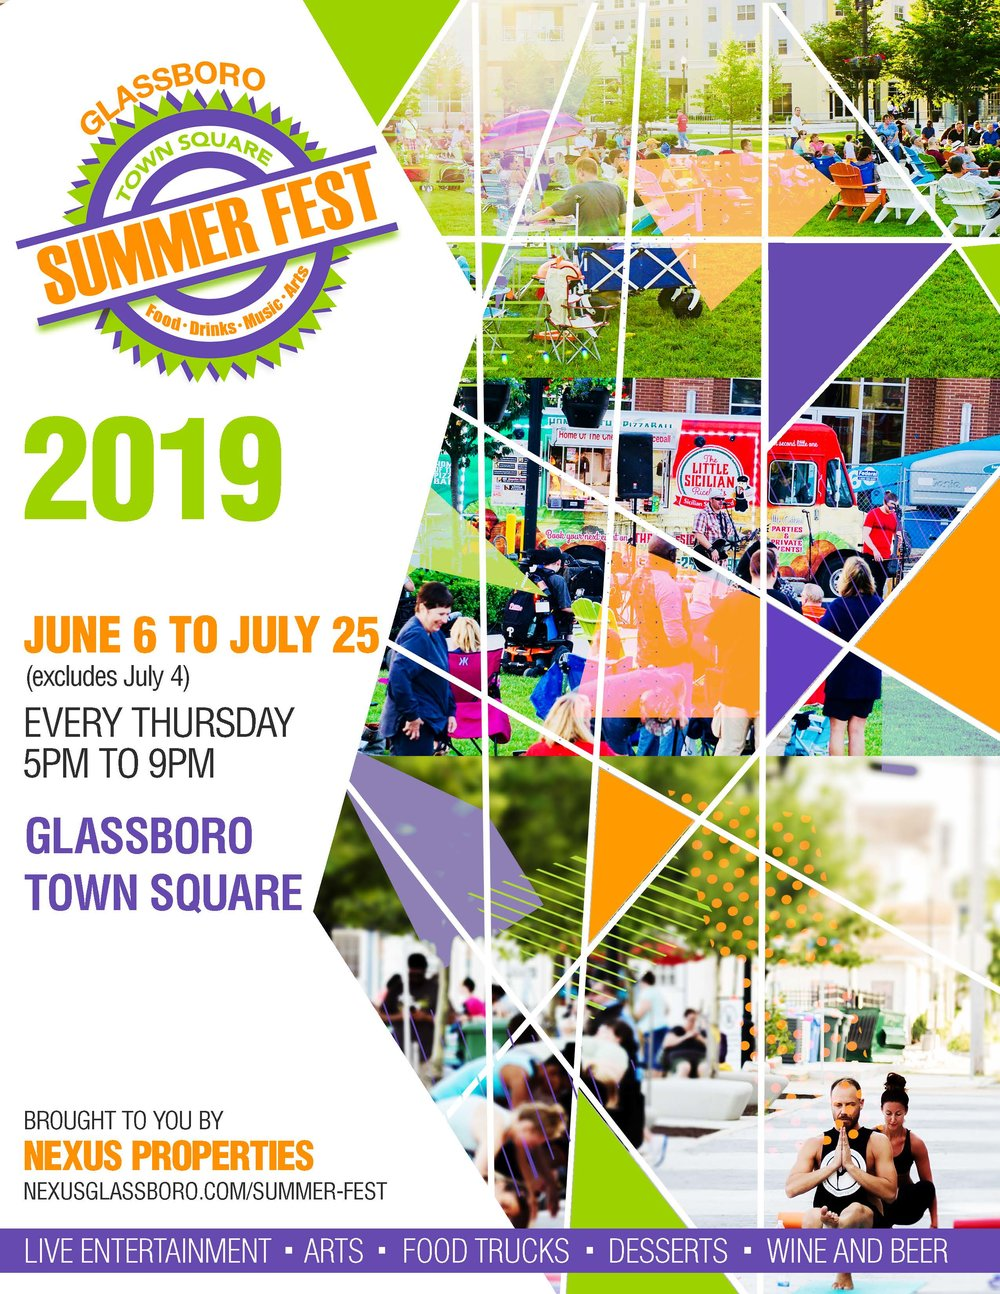 Glassboro Summer Fest Flyer 2019.jpg